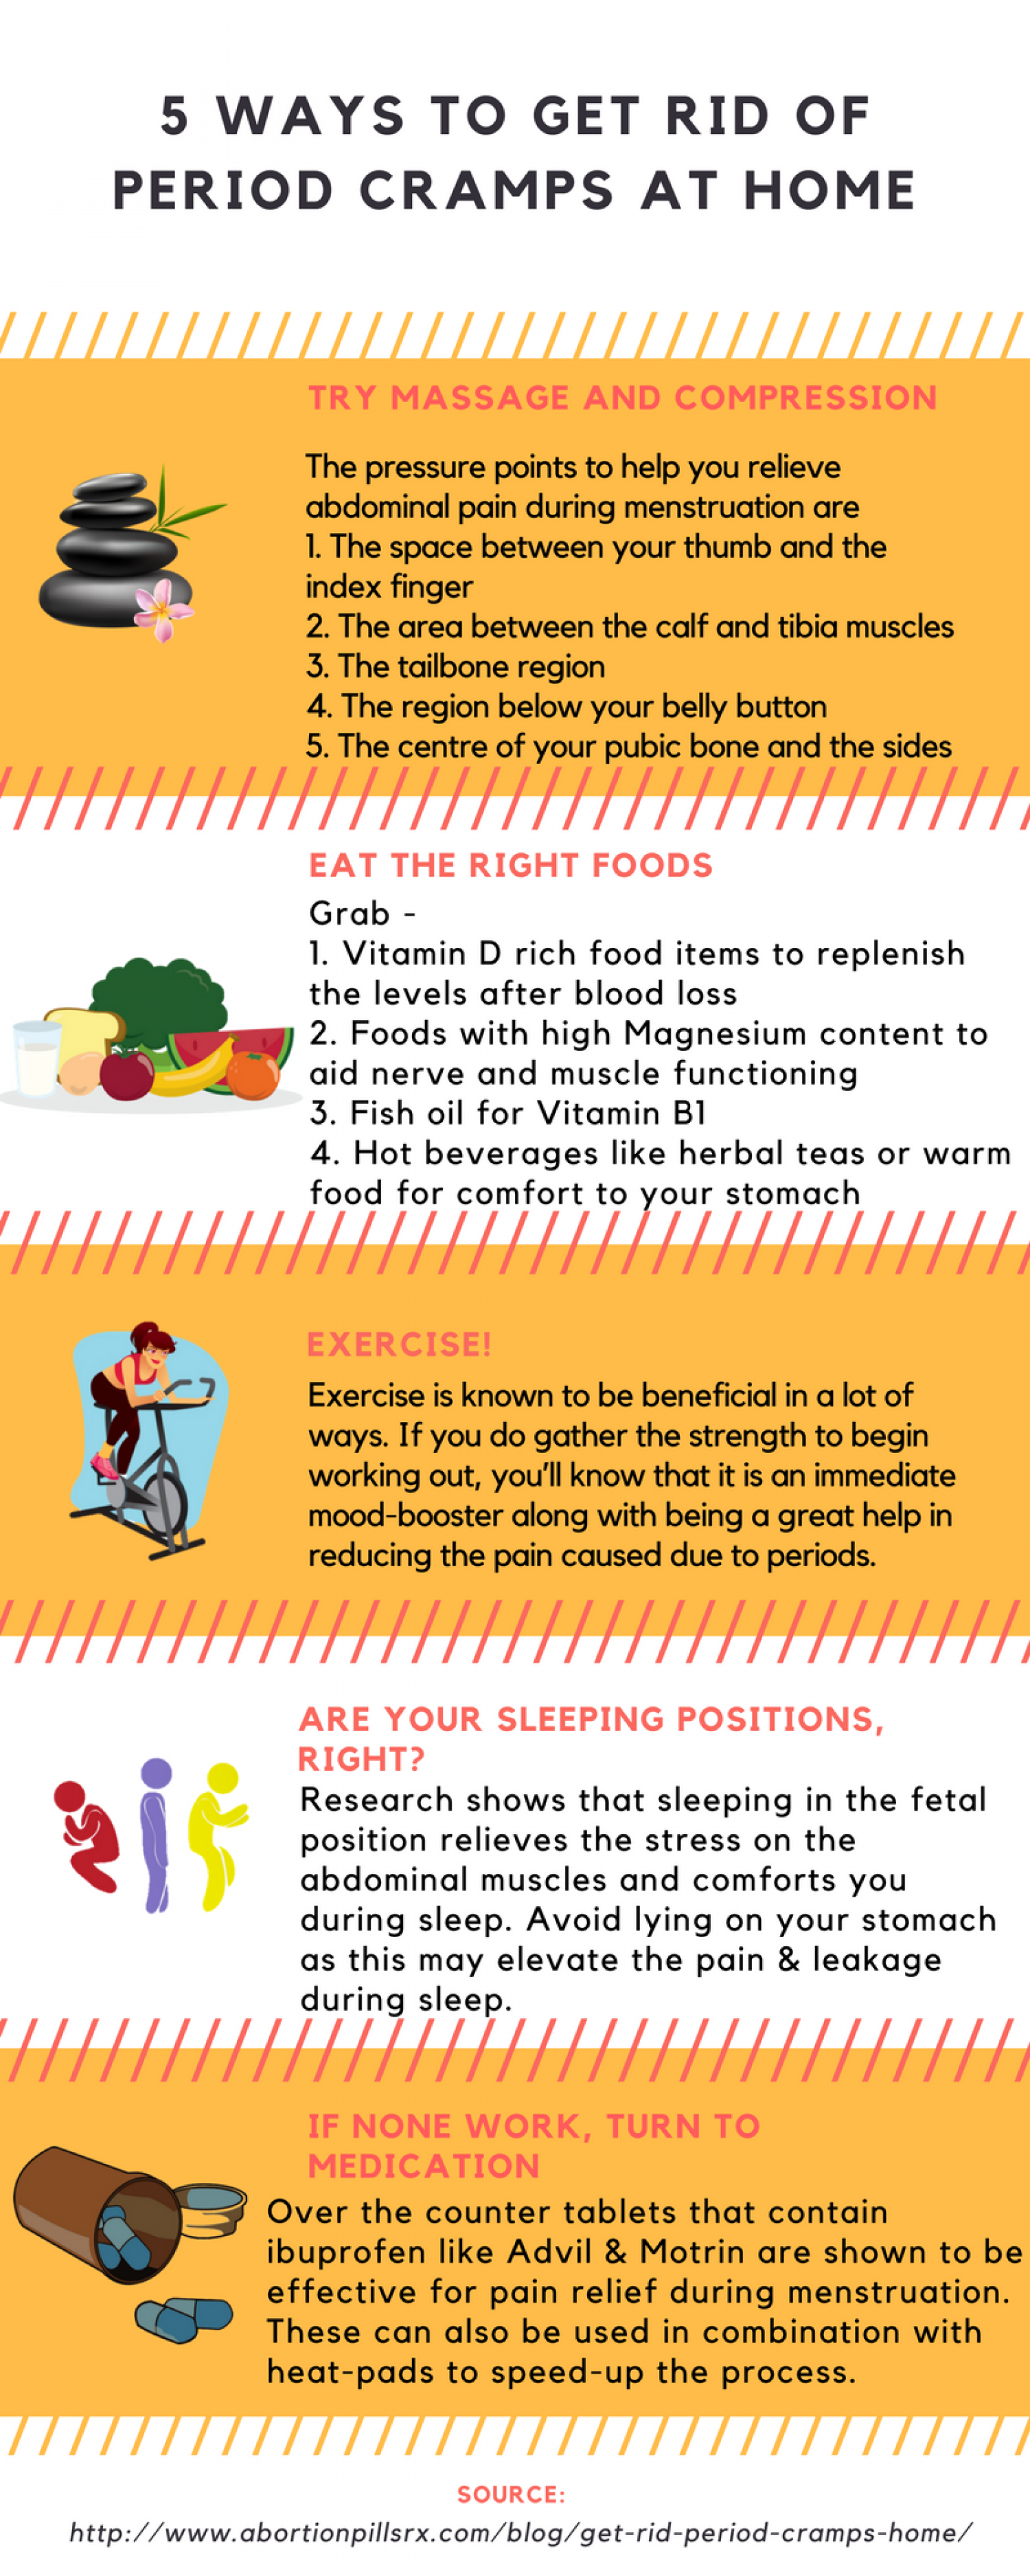 How to get rid of period cramps at home Infographic